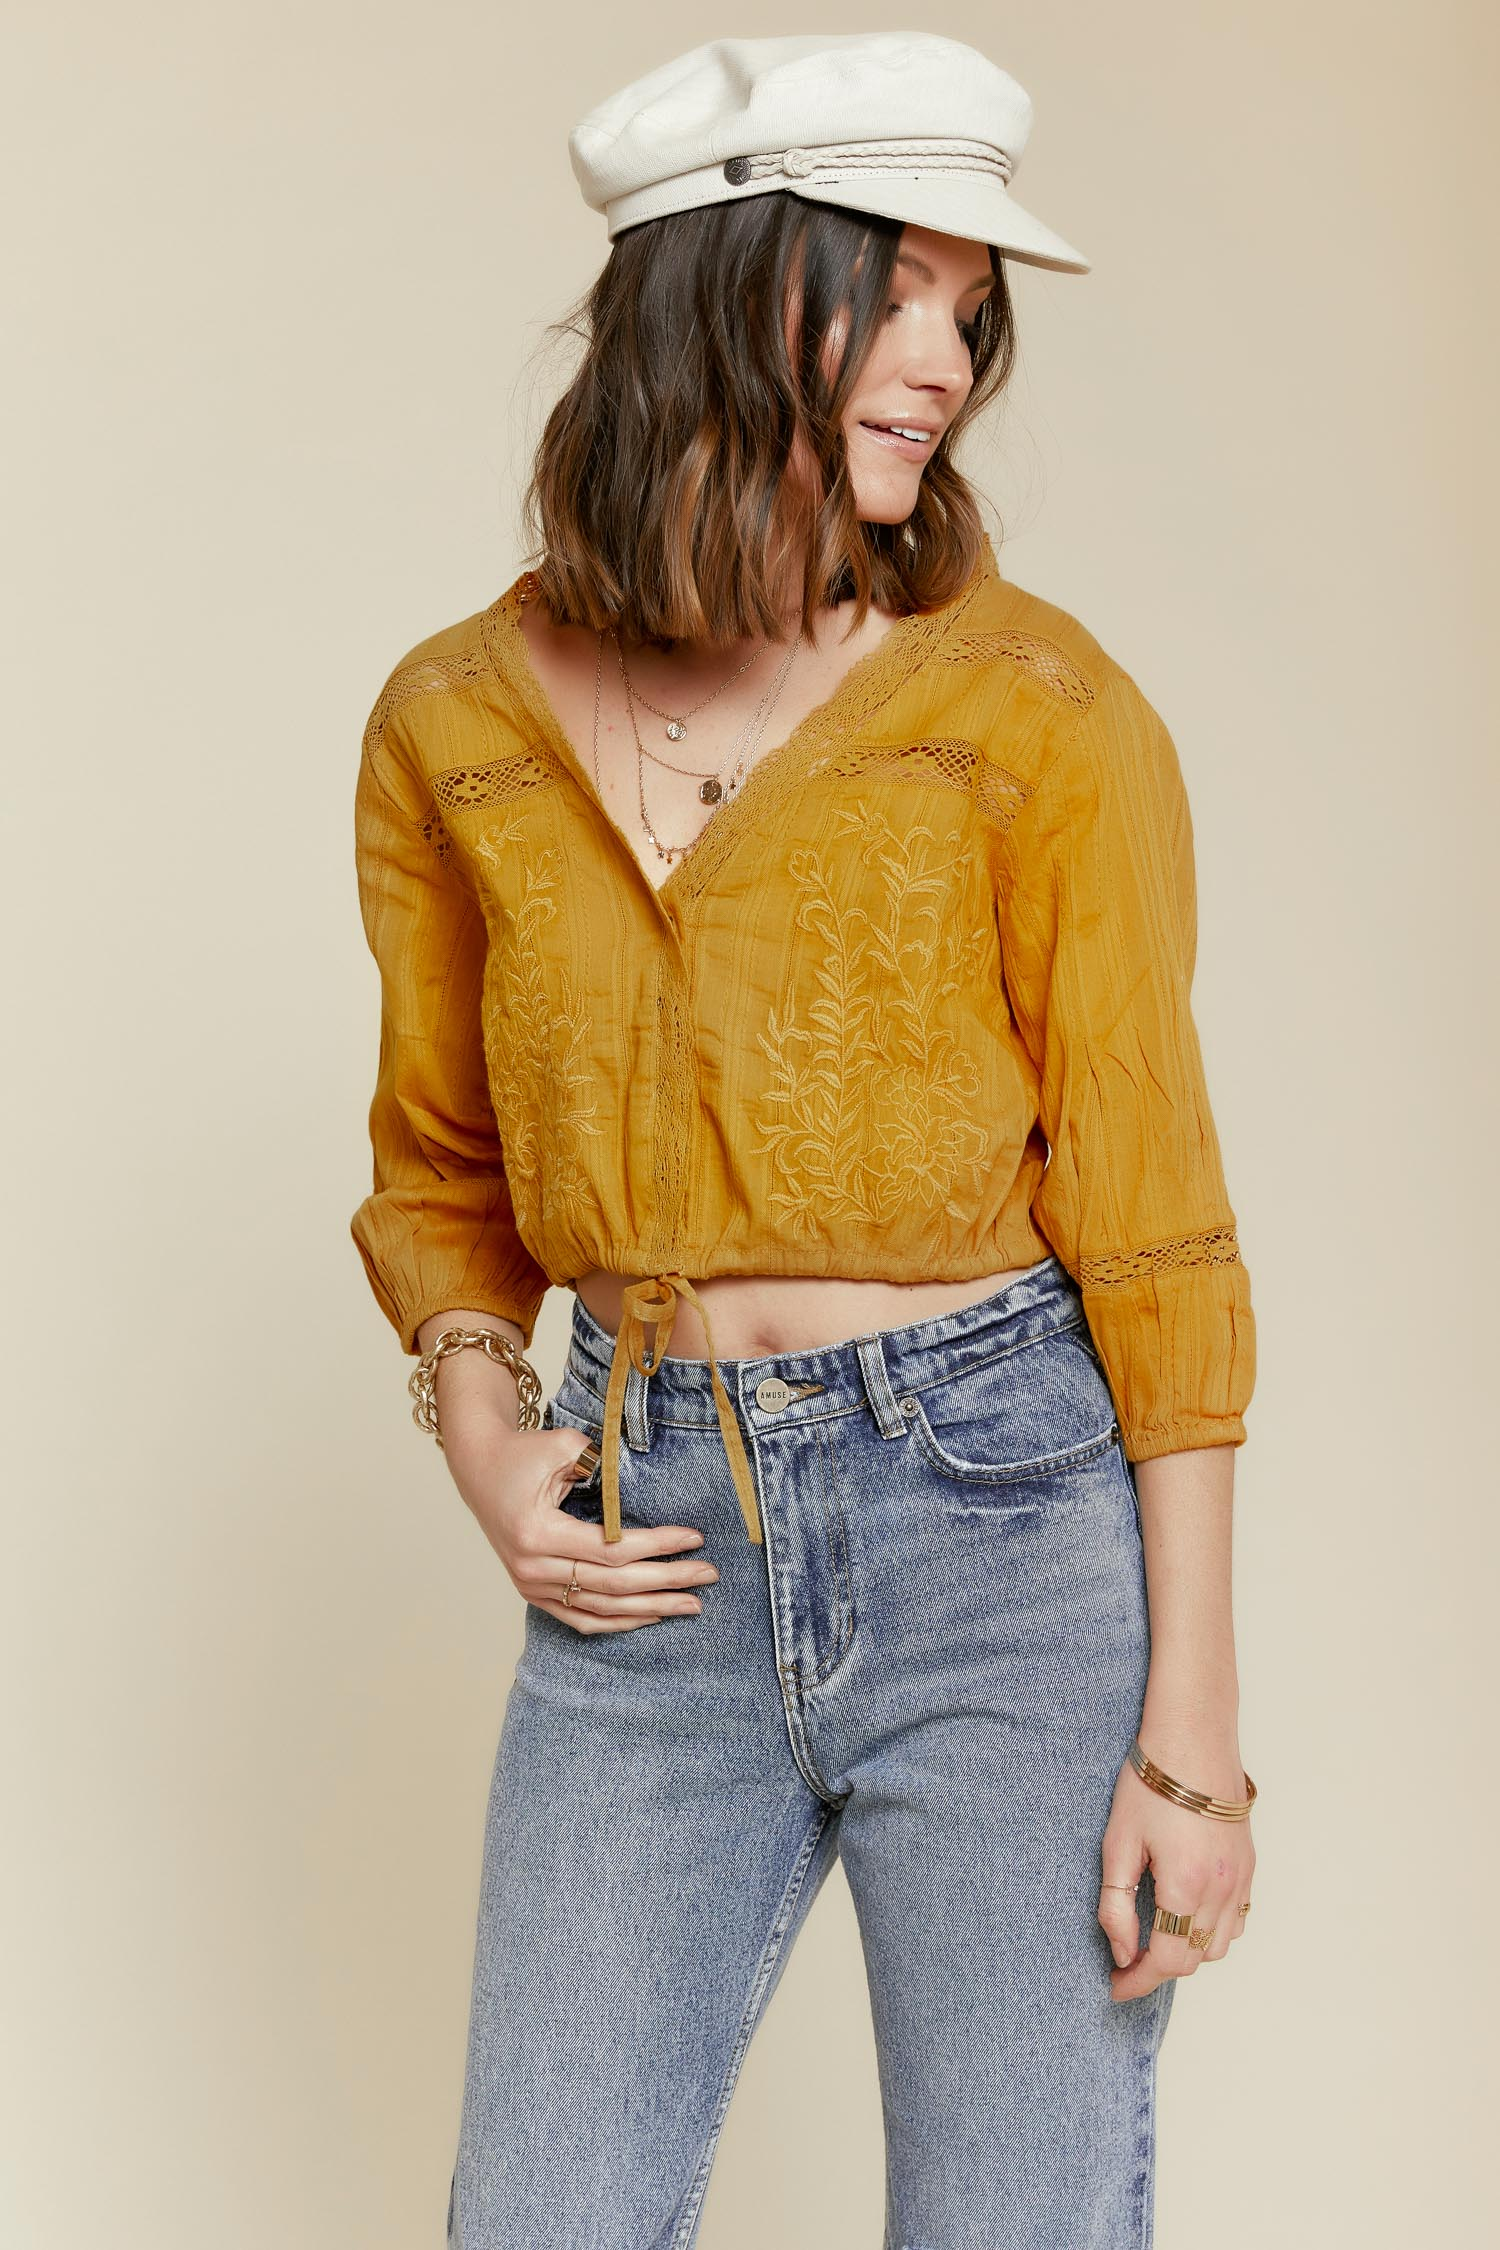 c01ff92e975 Free People  Follow Your Heart Top in Gold - BitterSweet Boutique